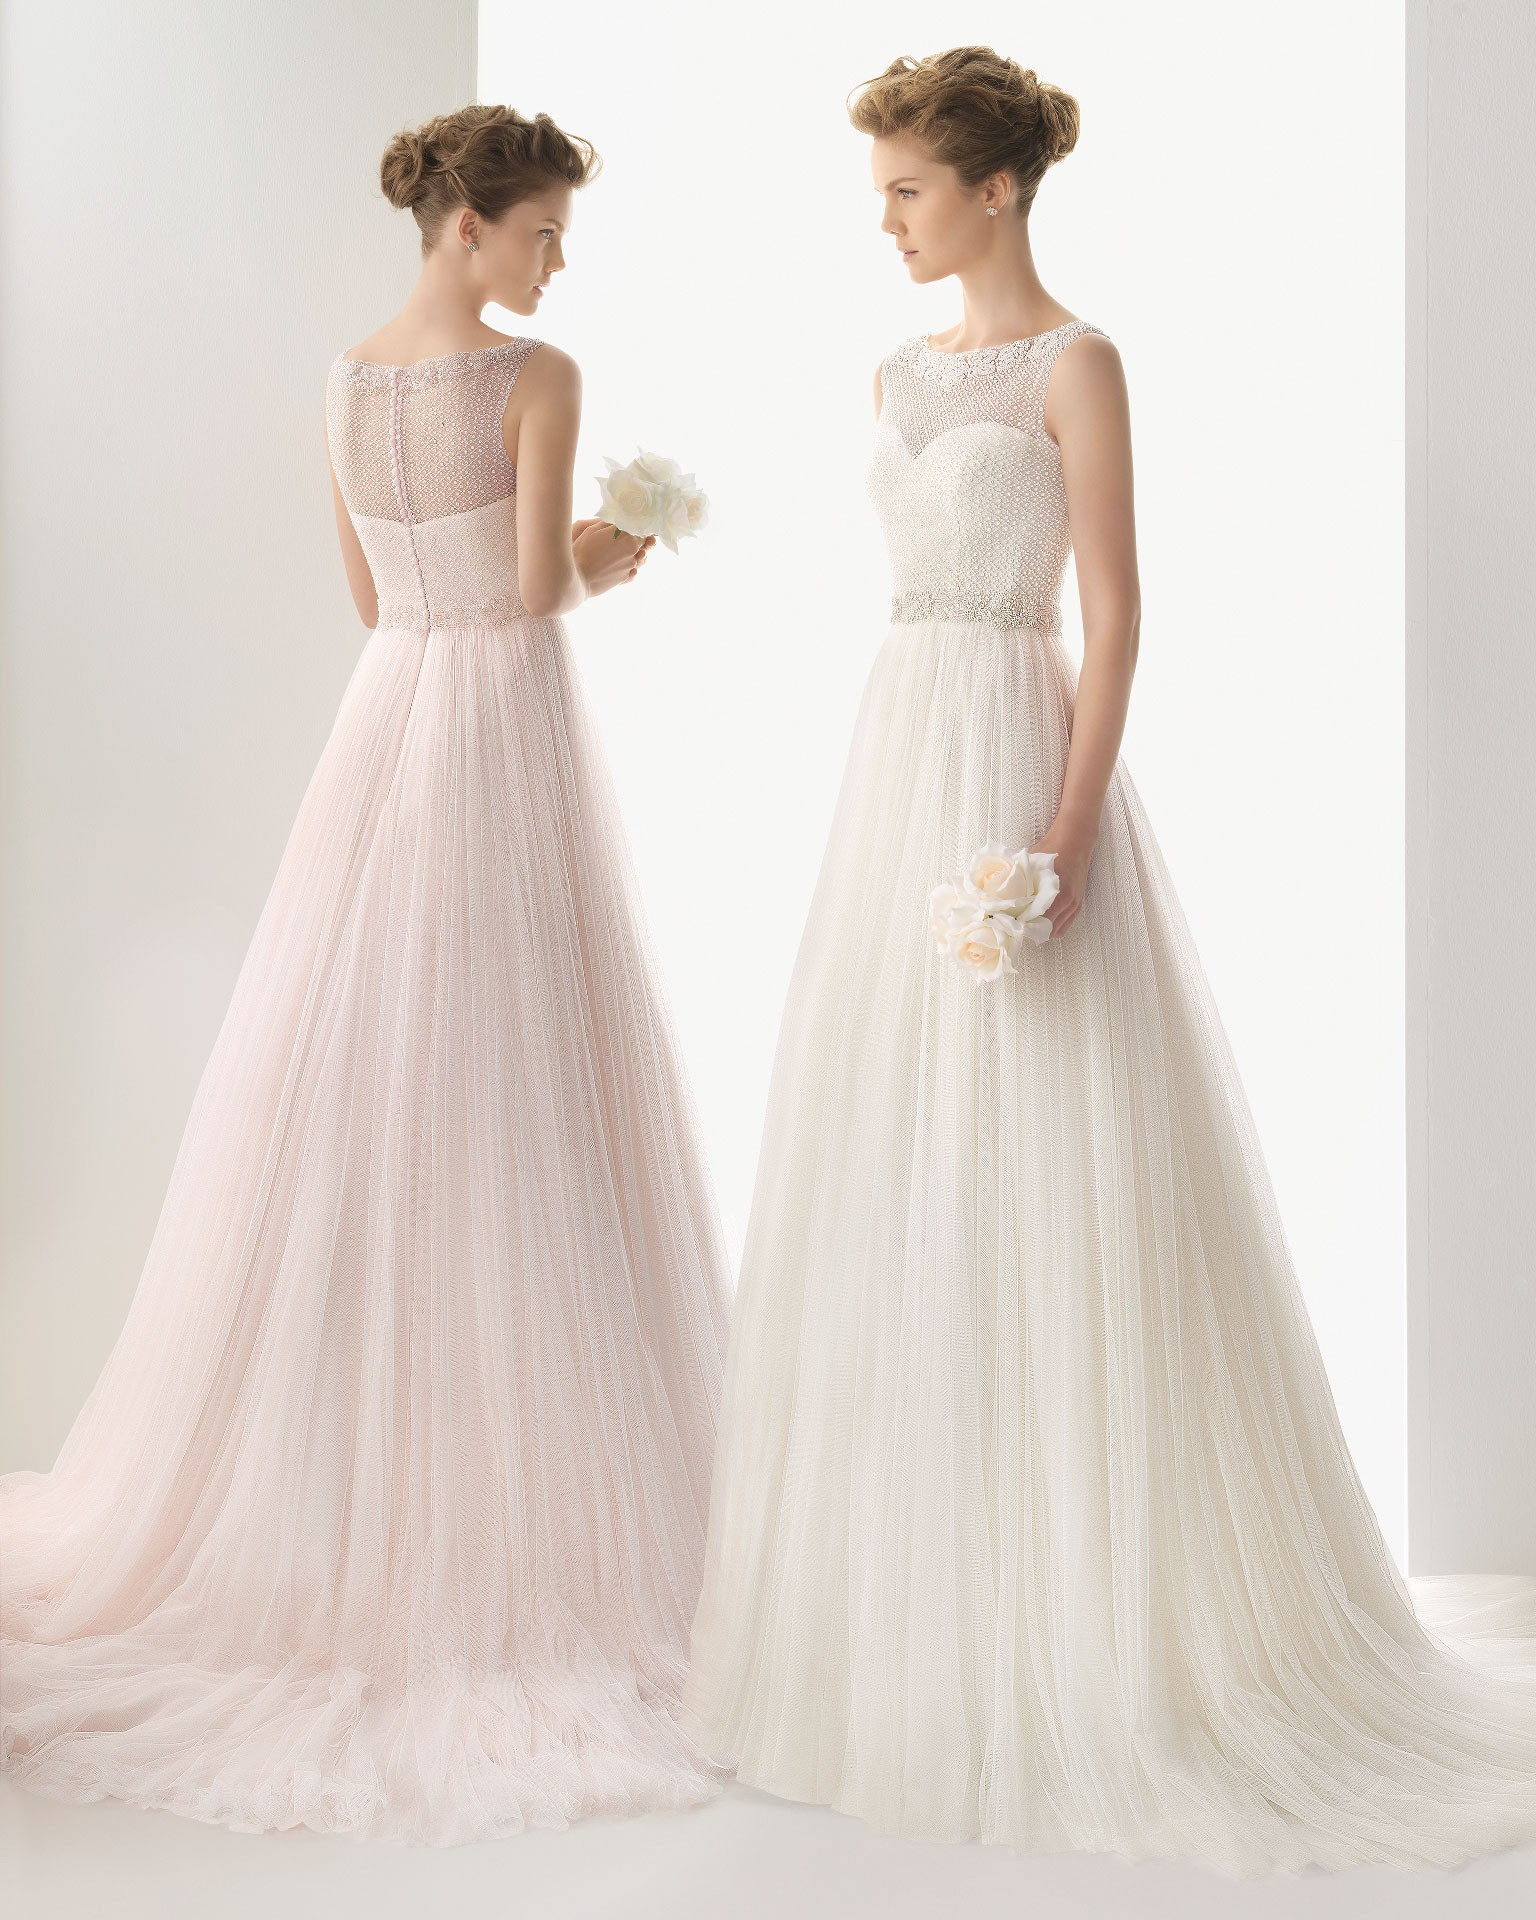 the wedding gown flowy wedding dresses http www alizeebridal com a line wedding